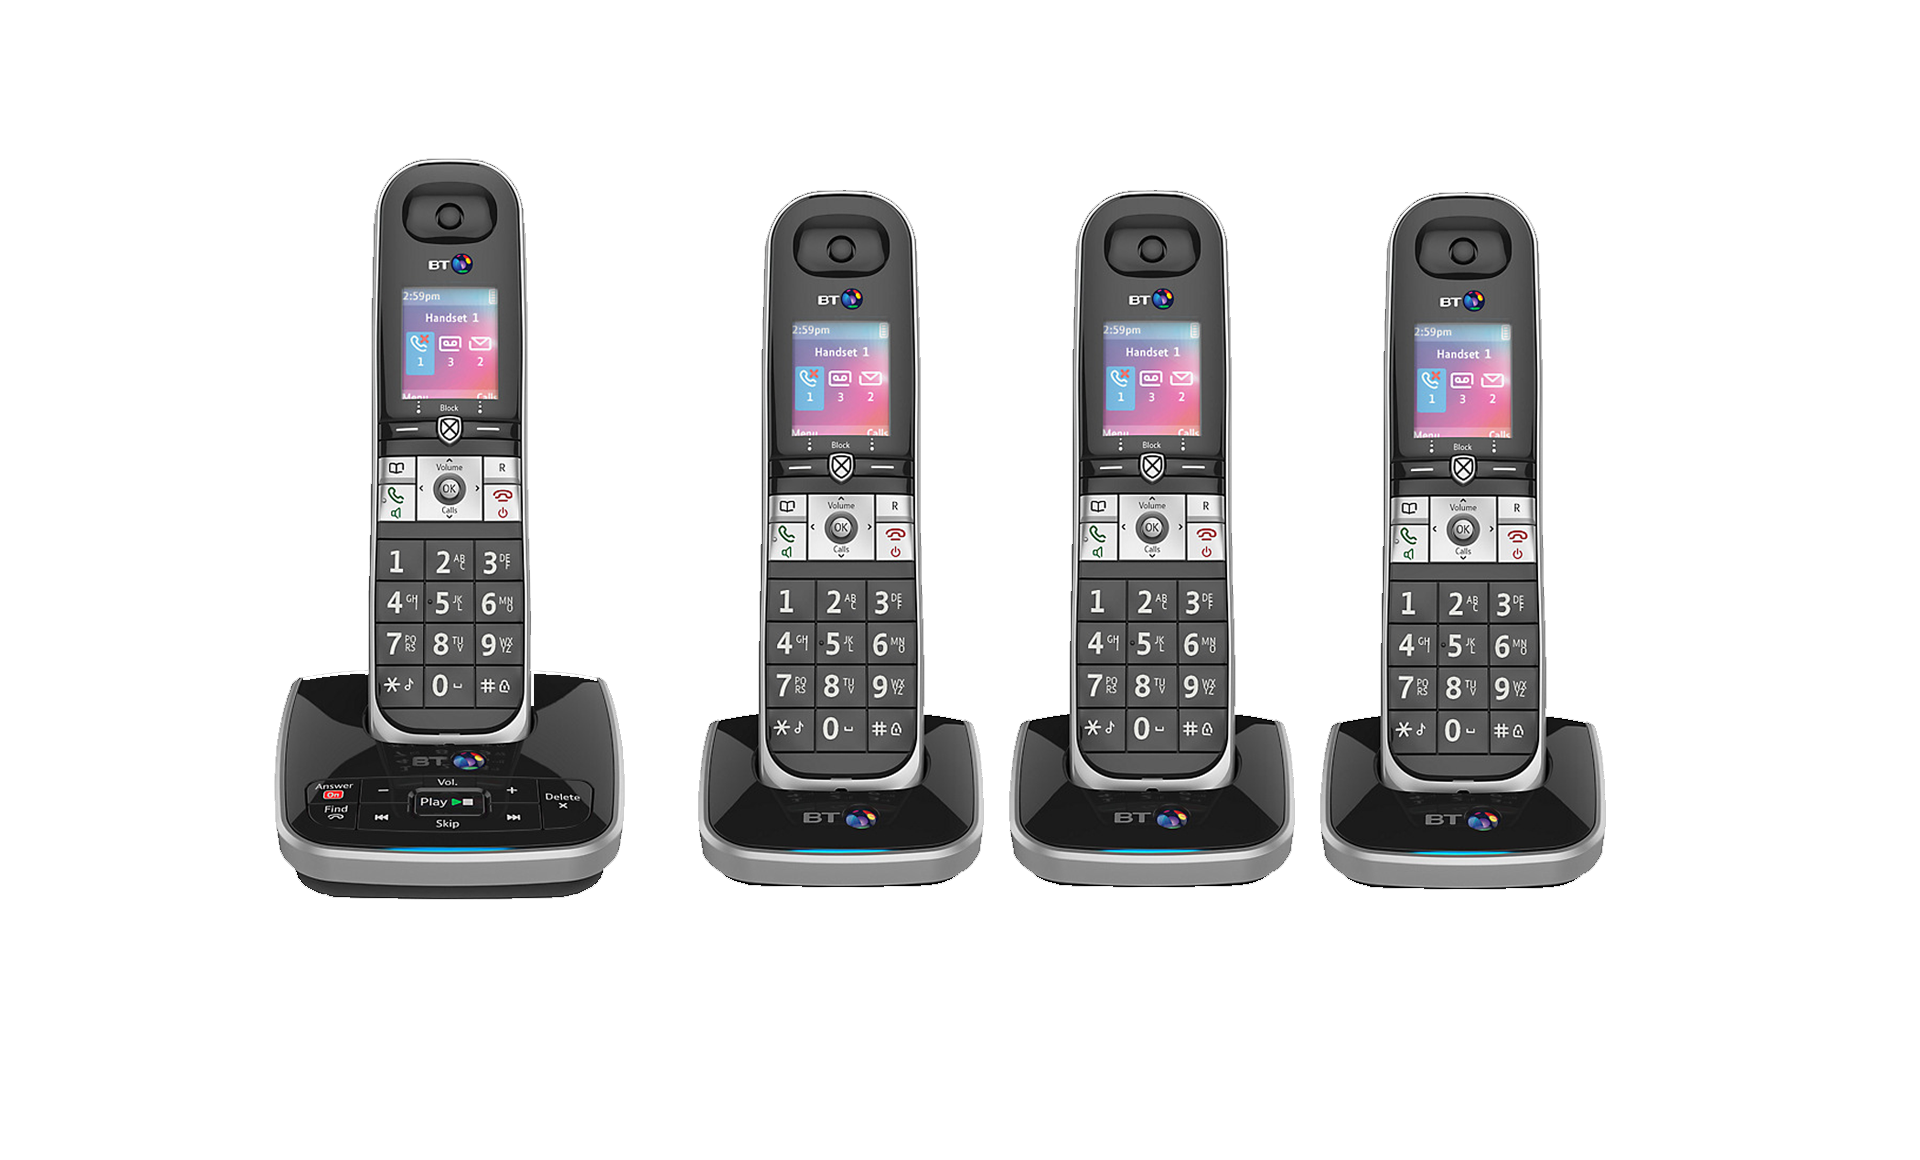 bt 8610 quad digital cordless phone with answer machine advanced call blocking ebay. Black Bedroom Furniture Sets. Home Design Ideas